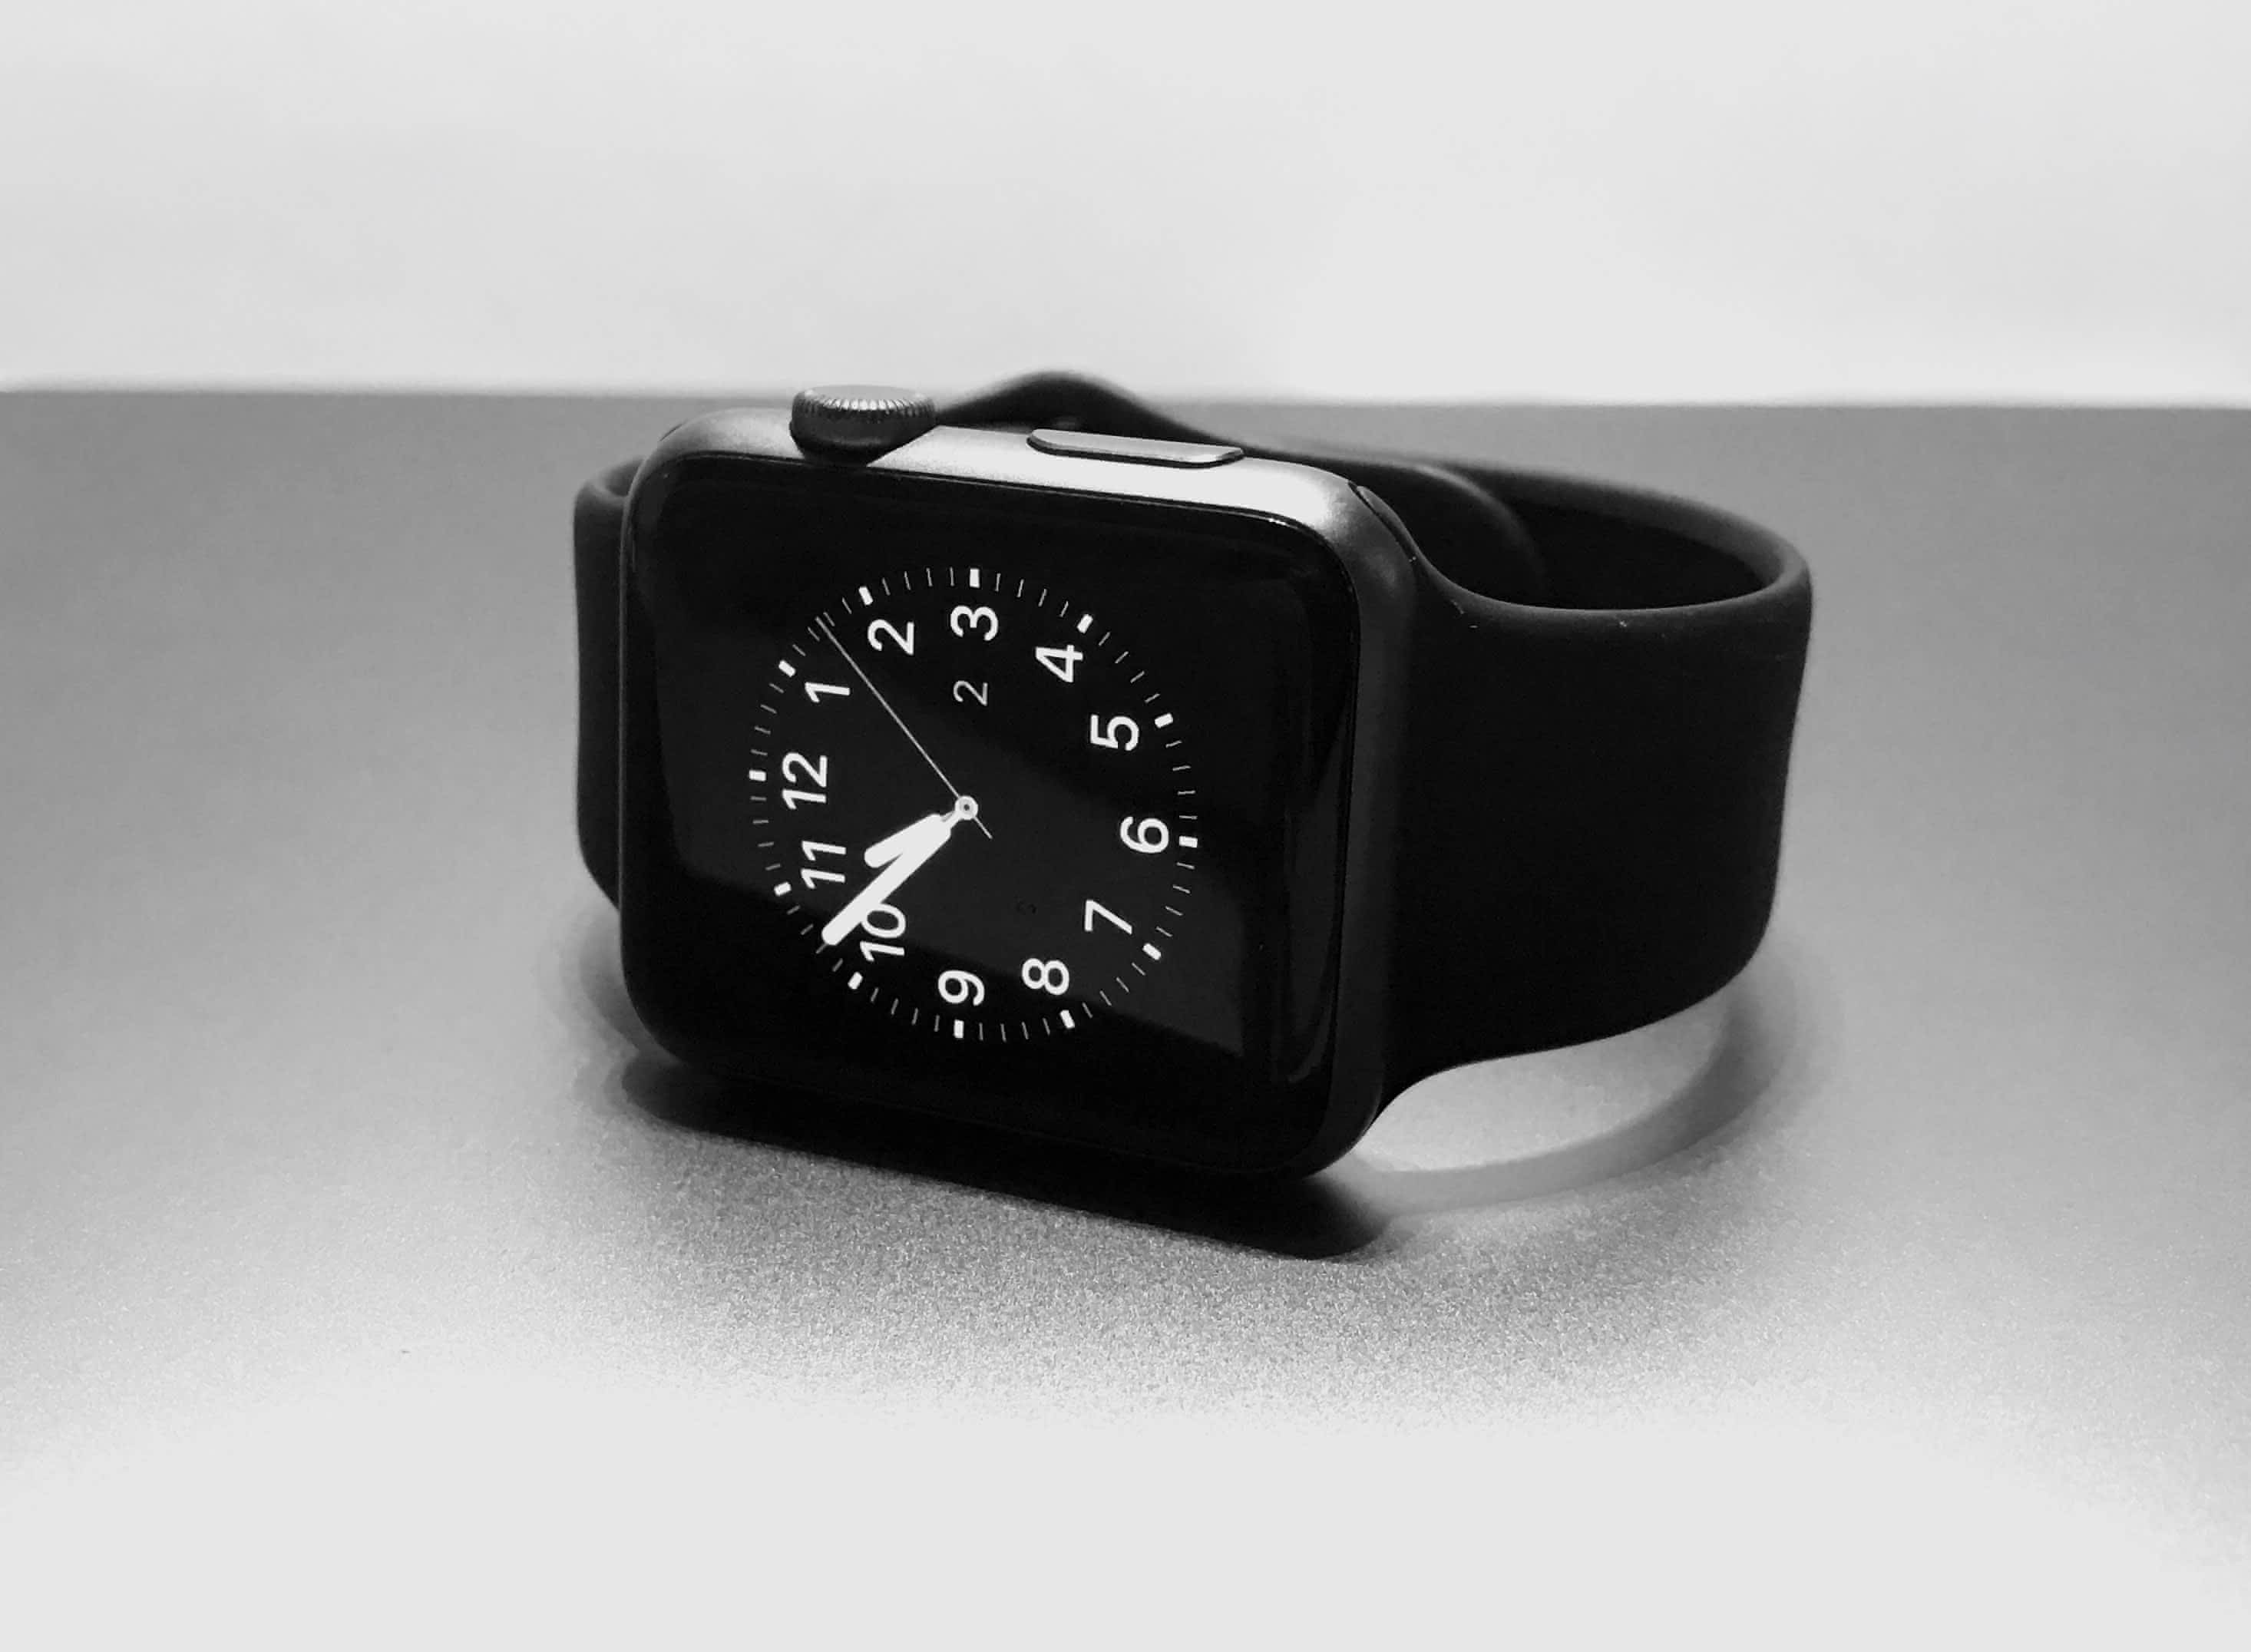 black-and-white-clock-countdown-440320